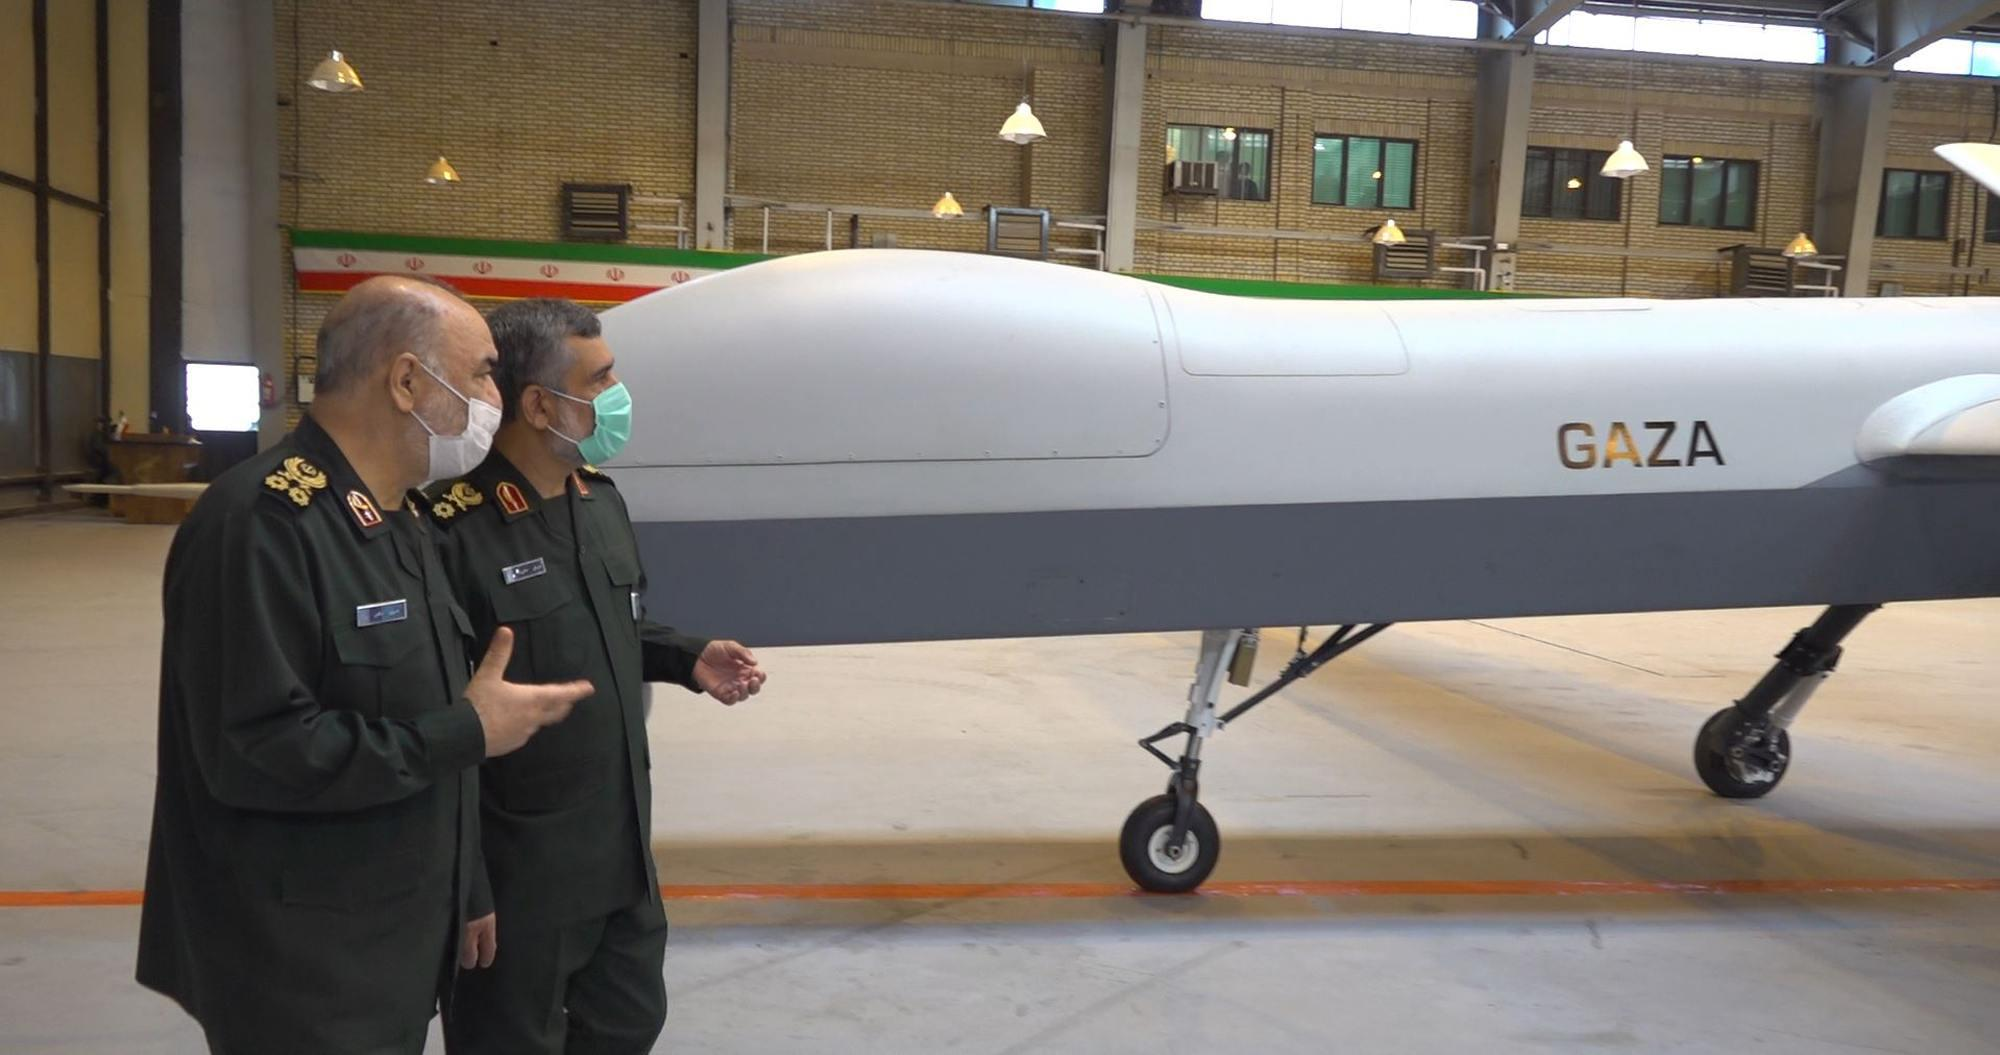 ifmat - Iran attacks are finally shining a spotlight on its deadly drones